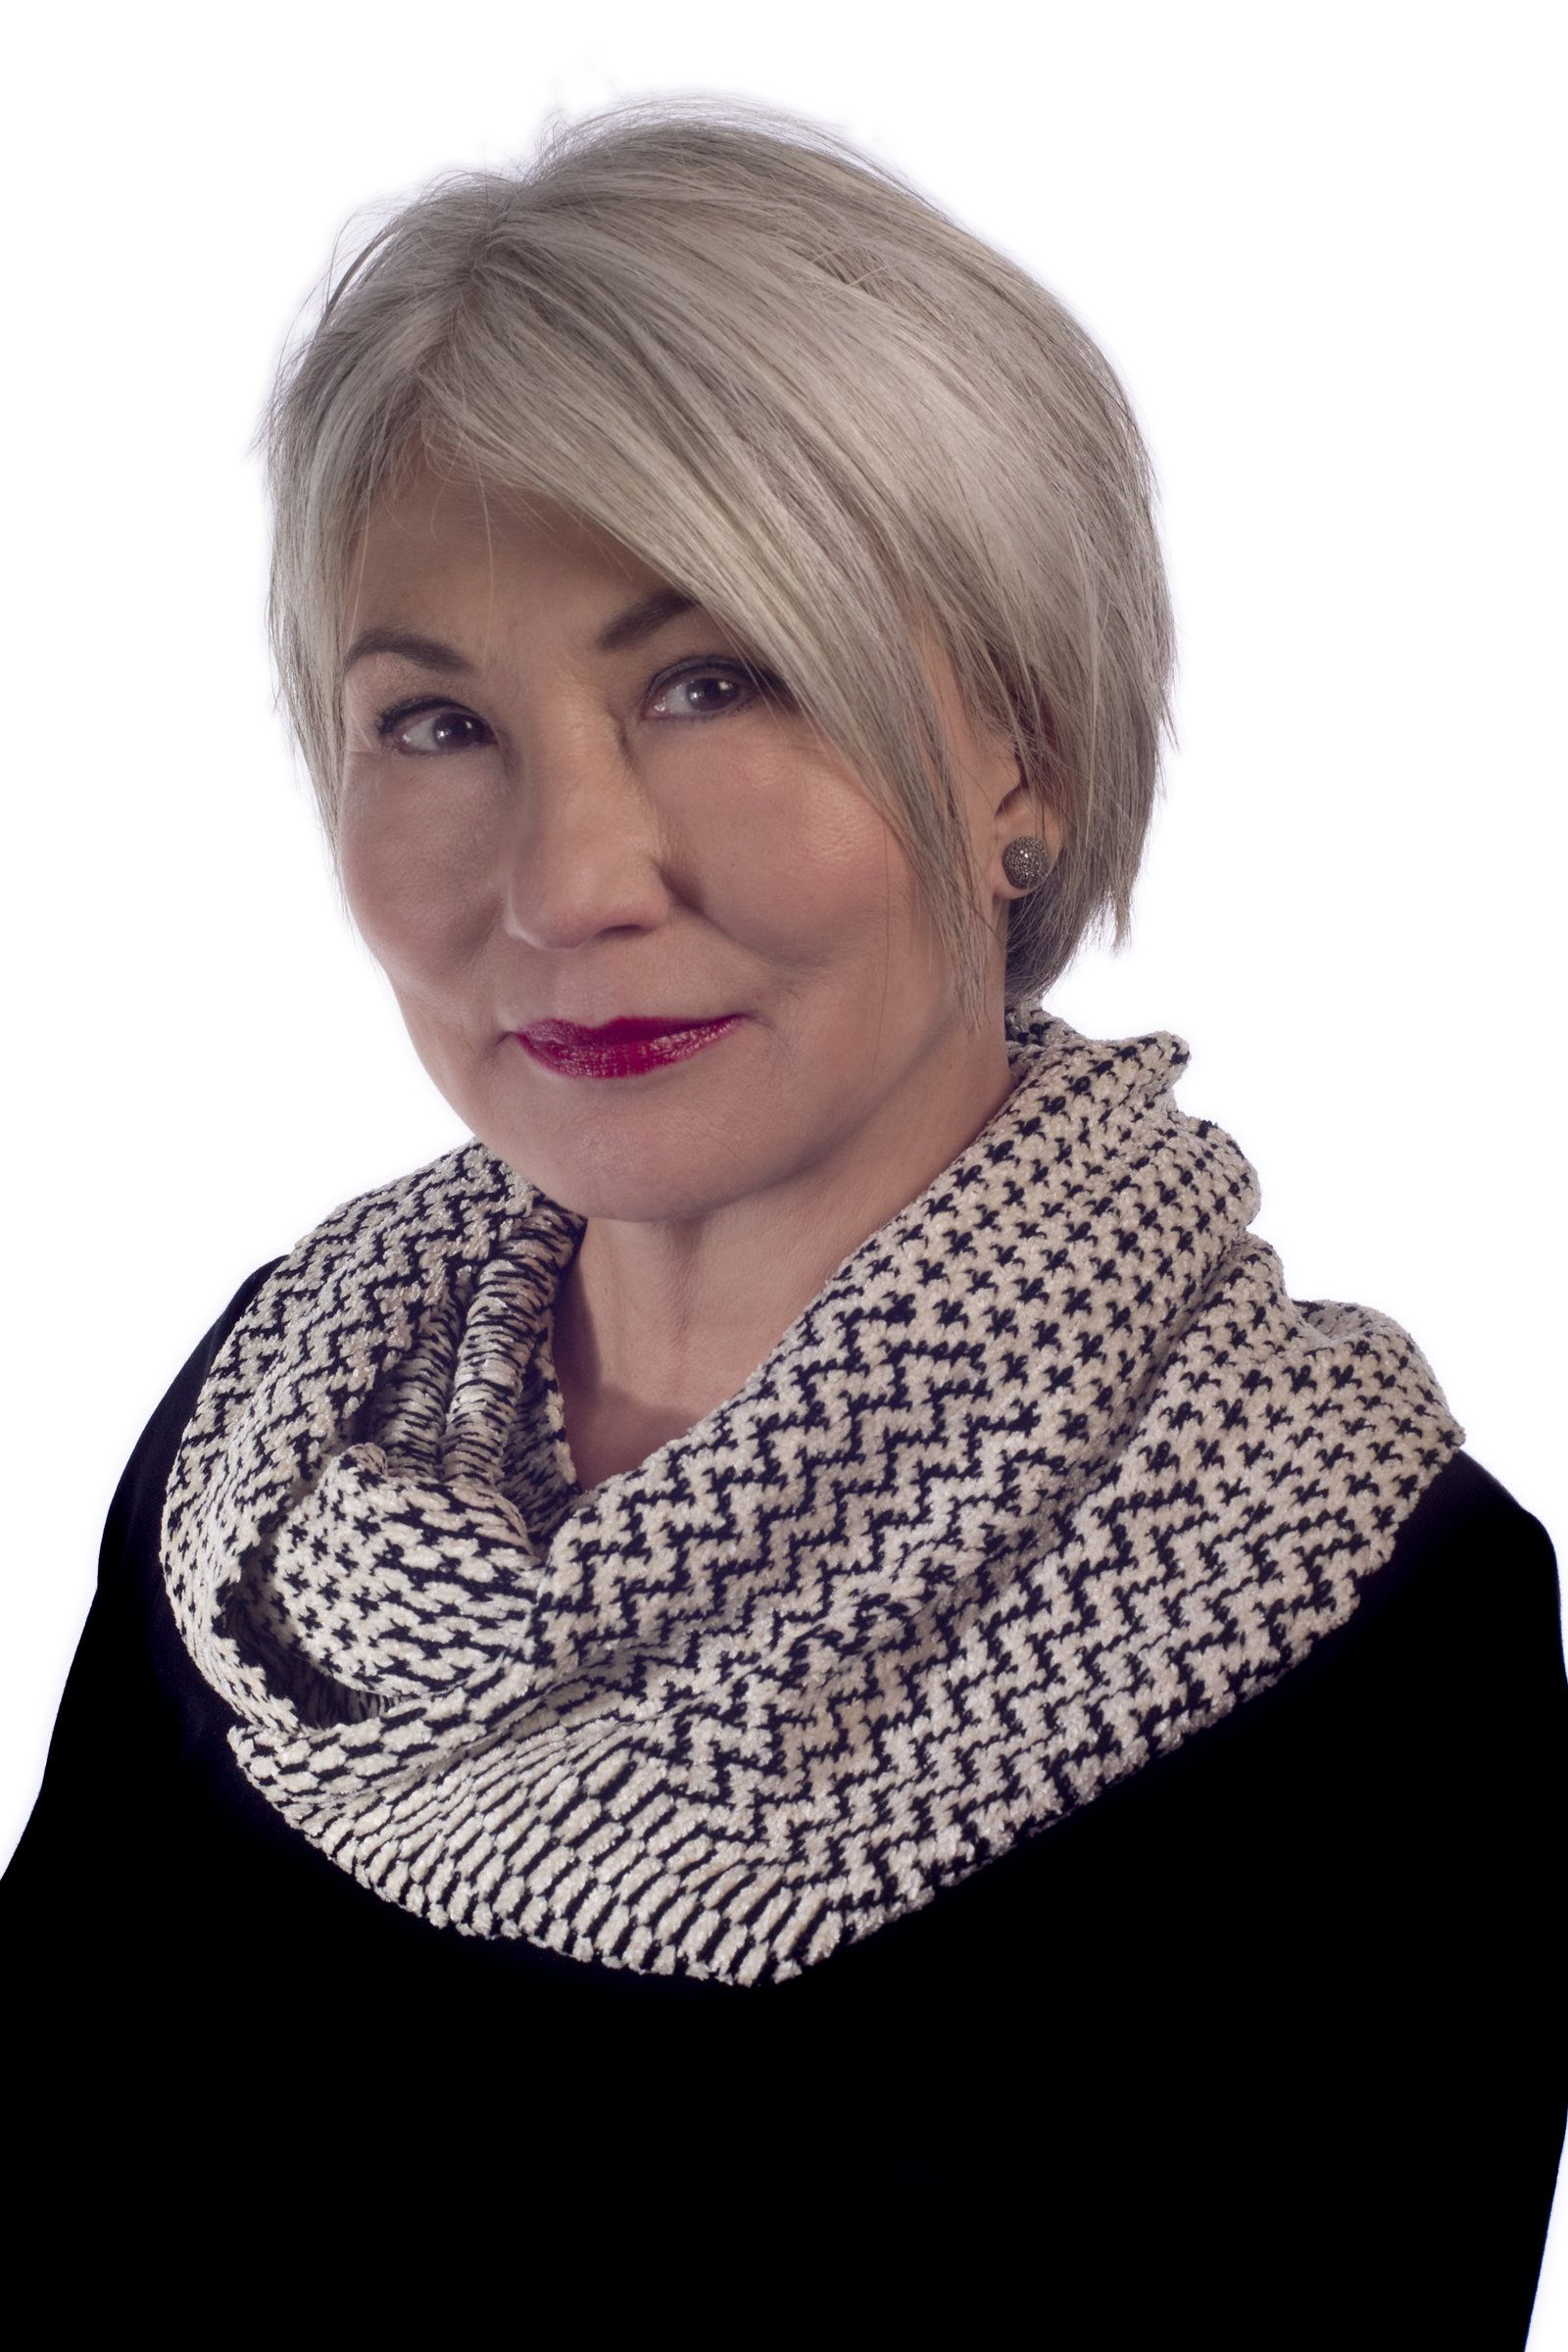 2021 New Lace Front Wigs Short Hair Wigs With Highlights Grey Platinum Blonde Best Treatment For White Hair